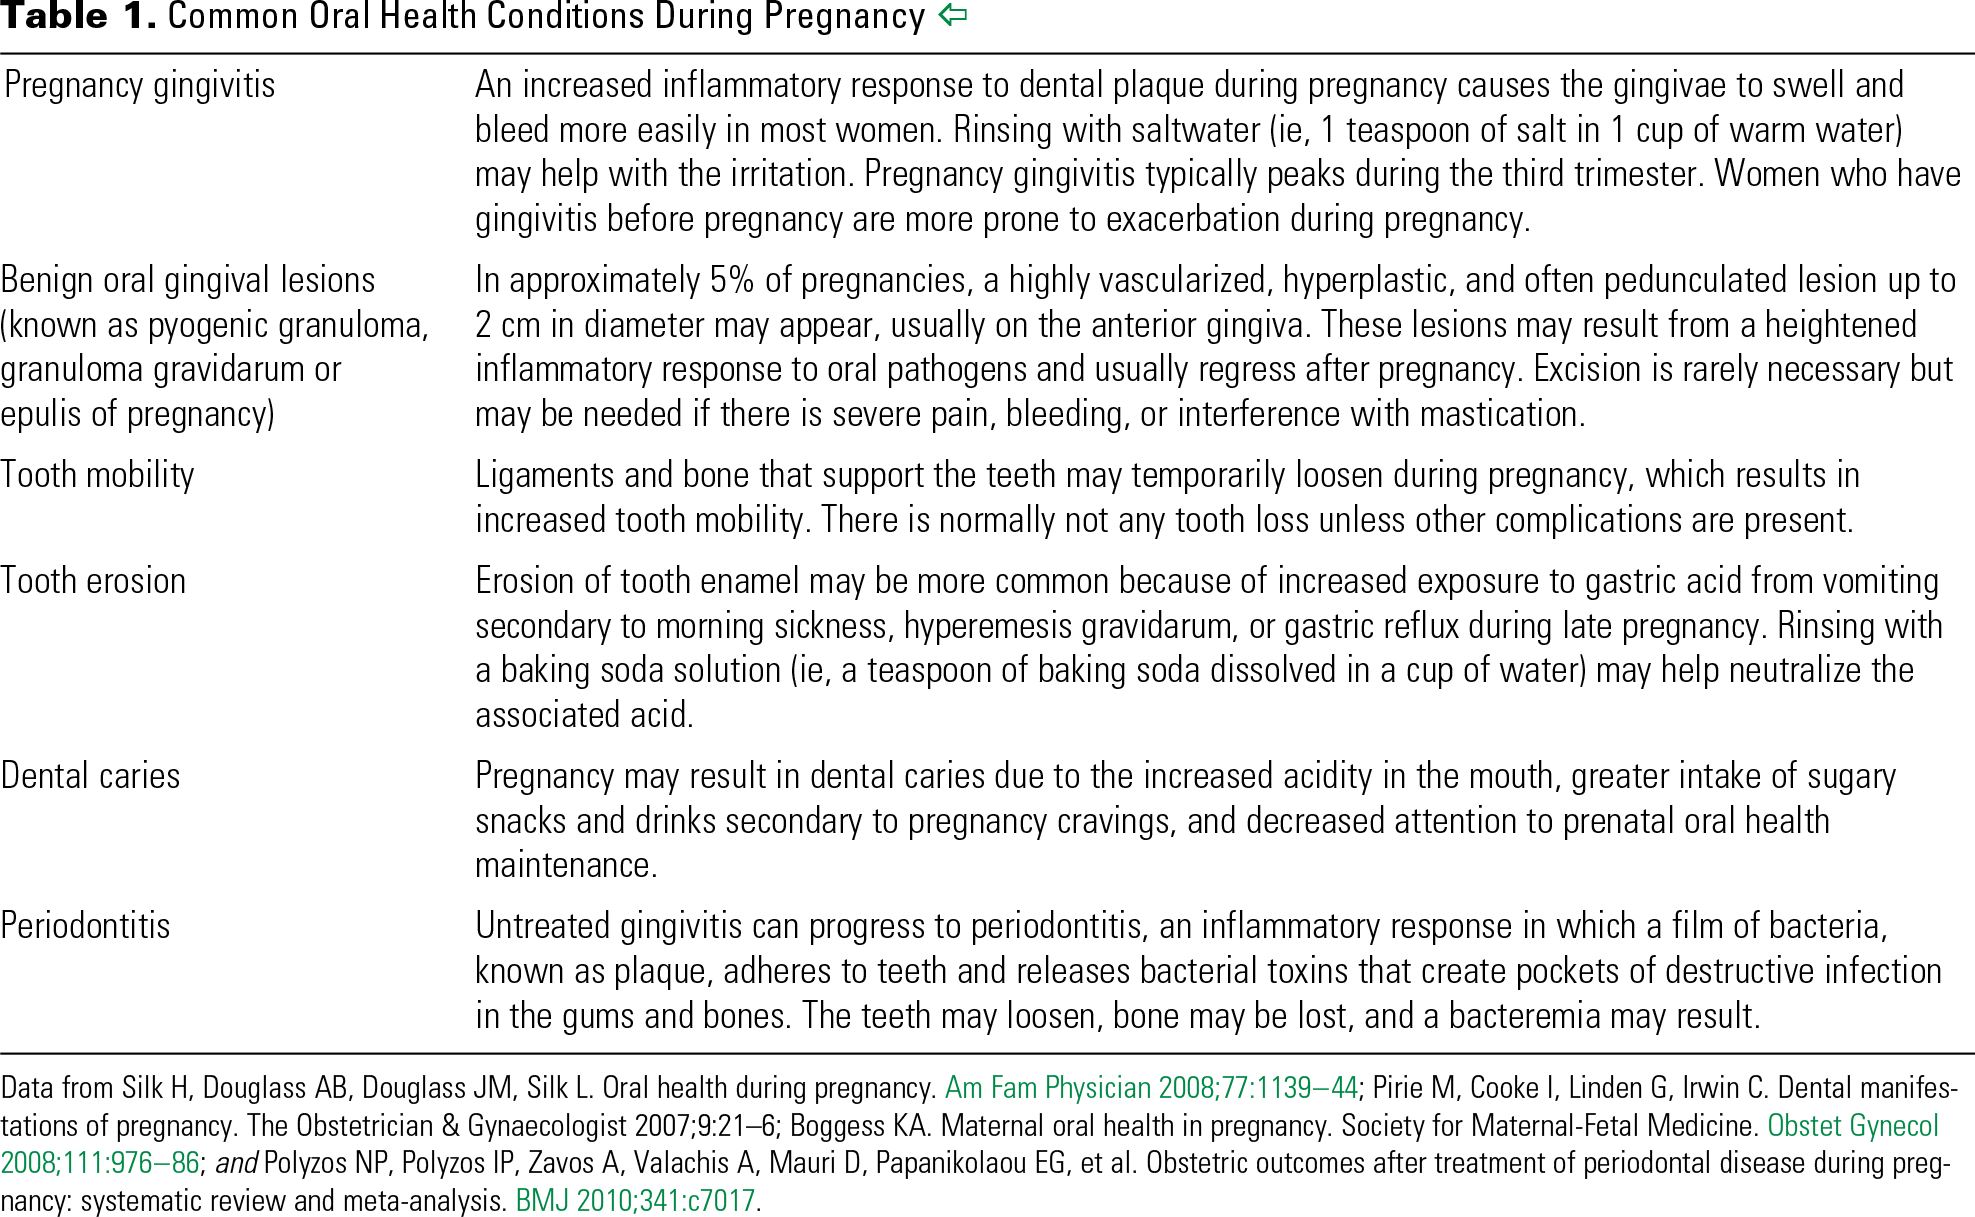 Table 1. Common Oral Health Conditions During Pregnancy